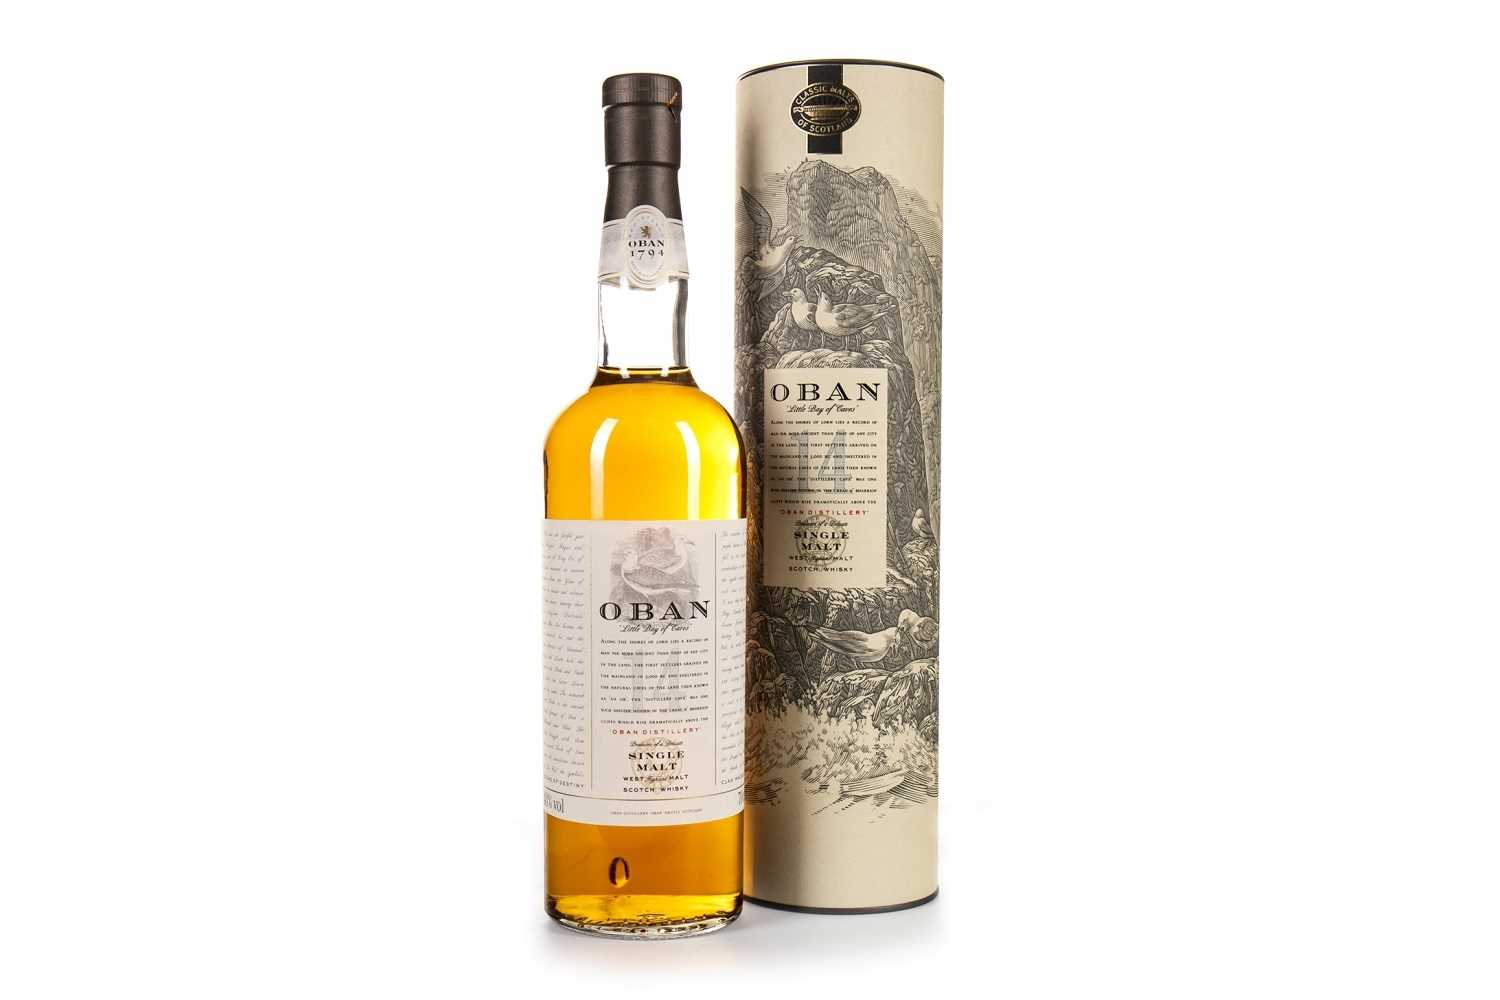 Lot 304-OBAN AGED 14 YEARS